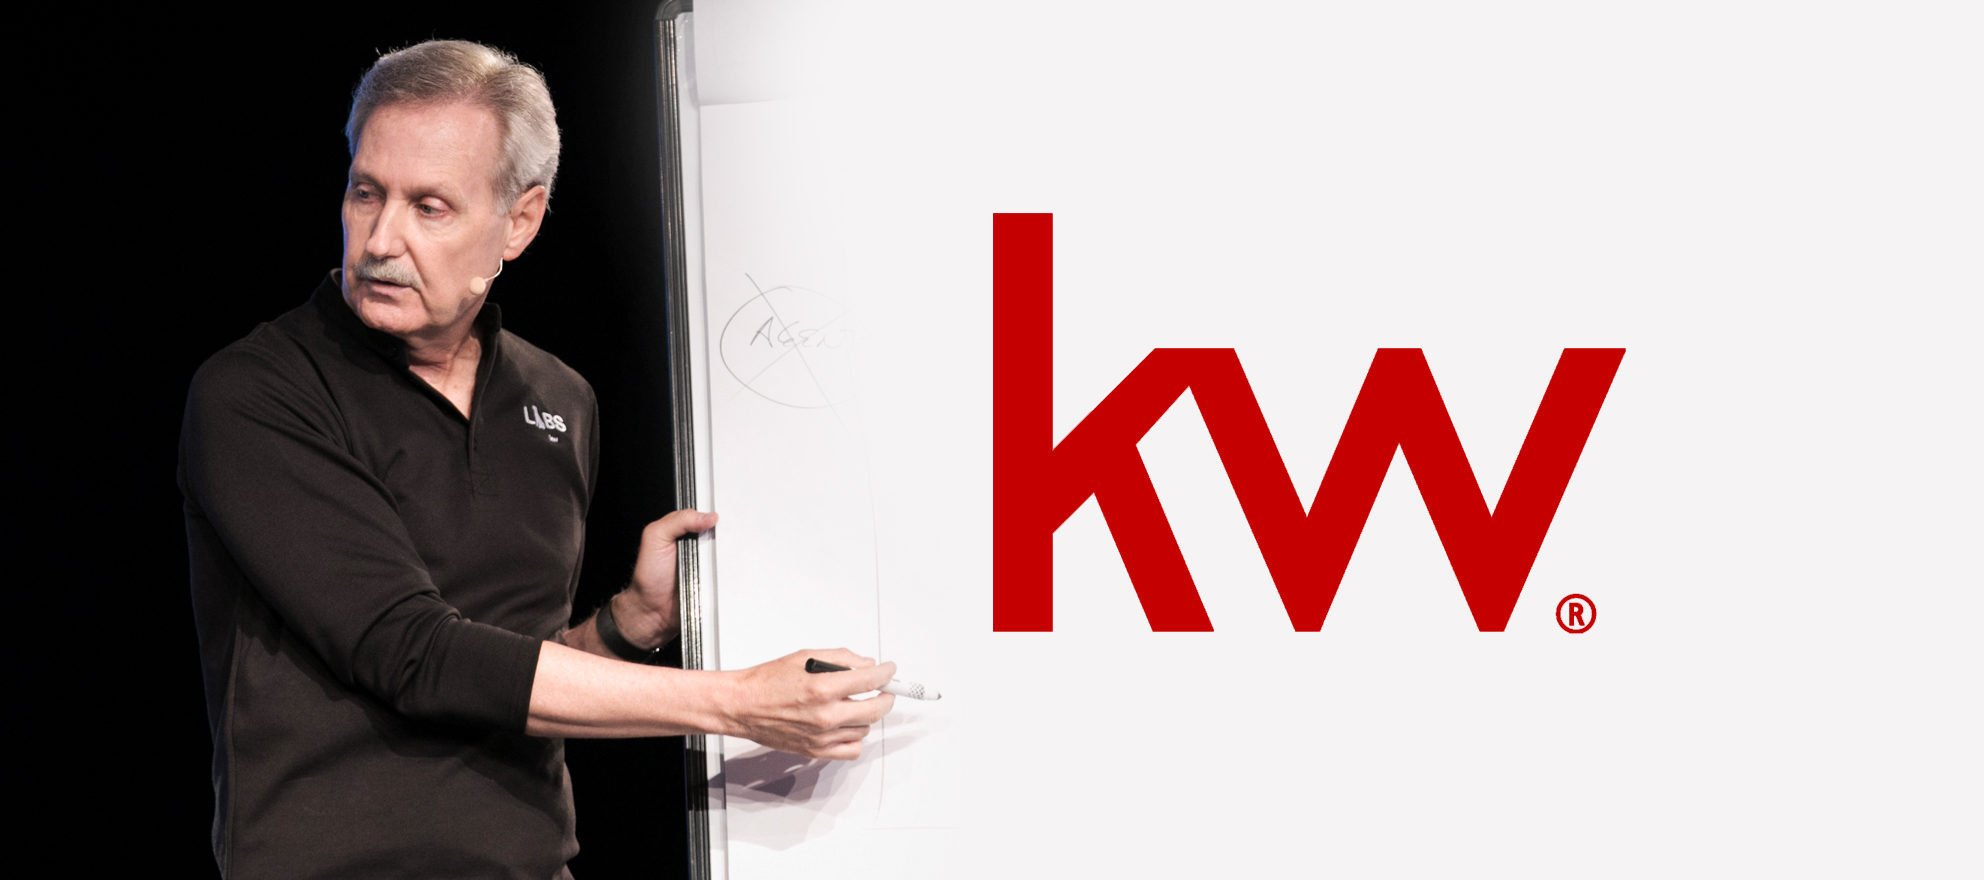 Keller Williams CEO scores 94% approval rating on 'Happiest Companies in America' list